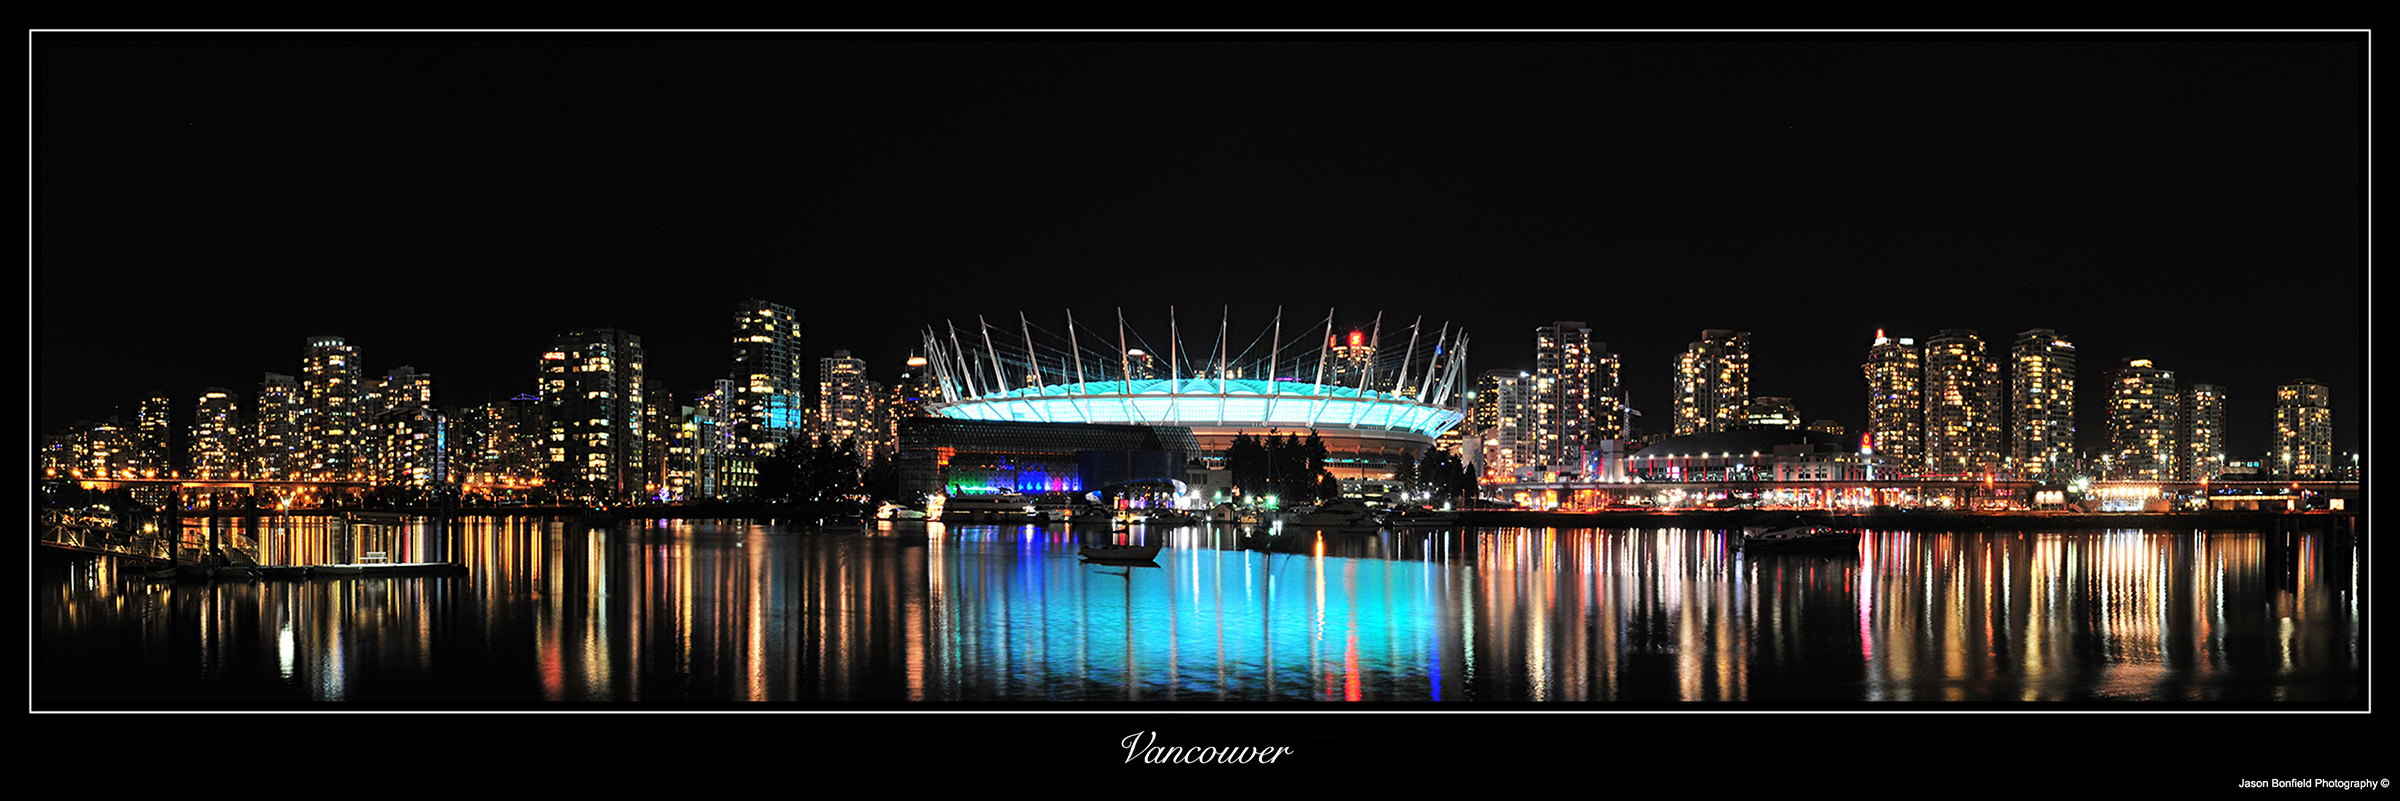 Nighttime panoramic landscape picture of Vancouver City reflected in the waterfront in Vancouver, Canada.